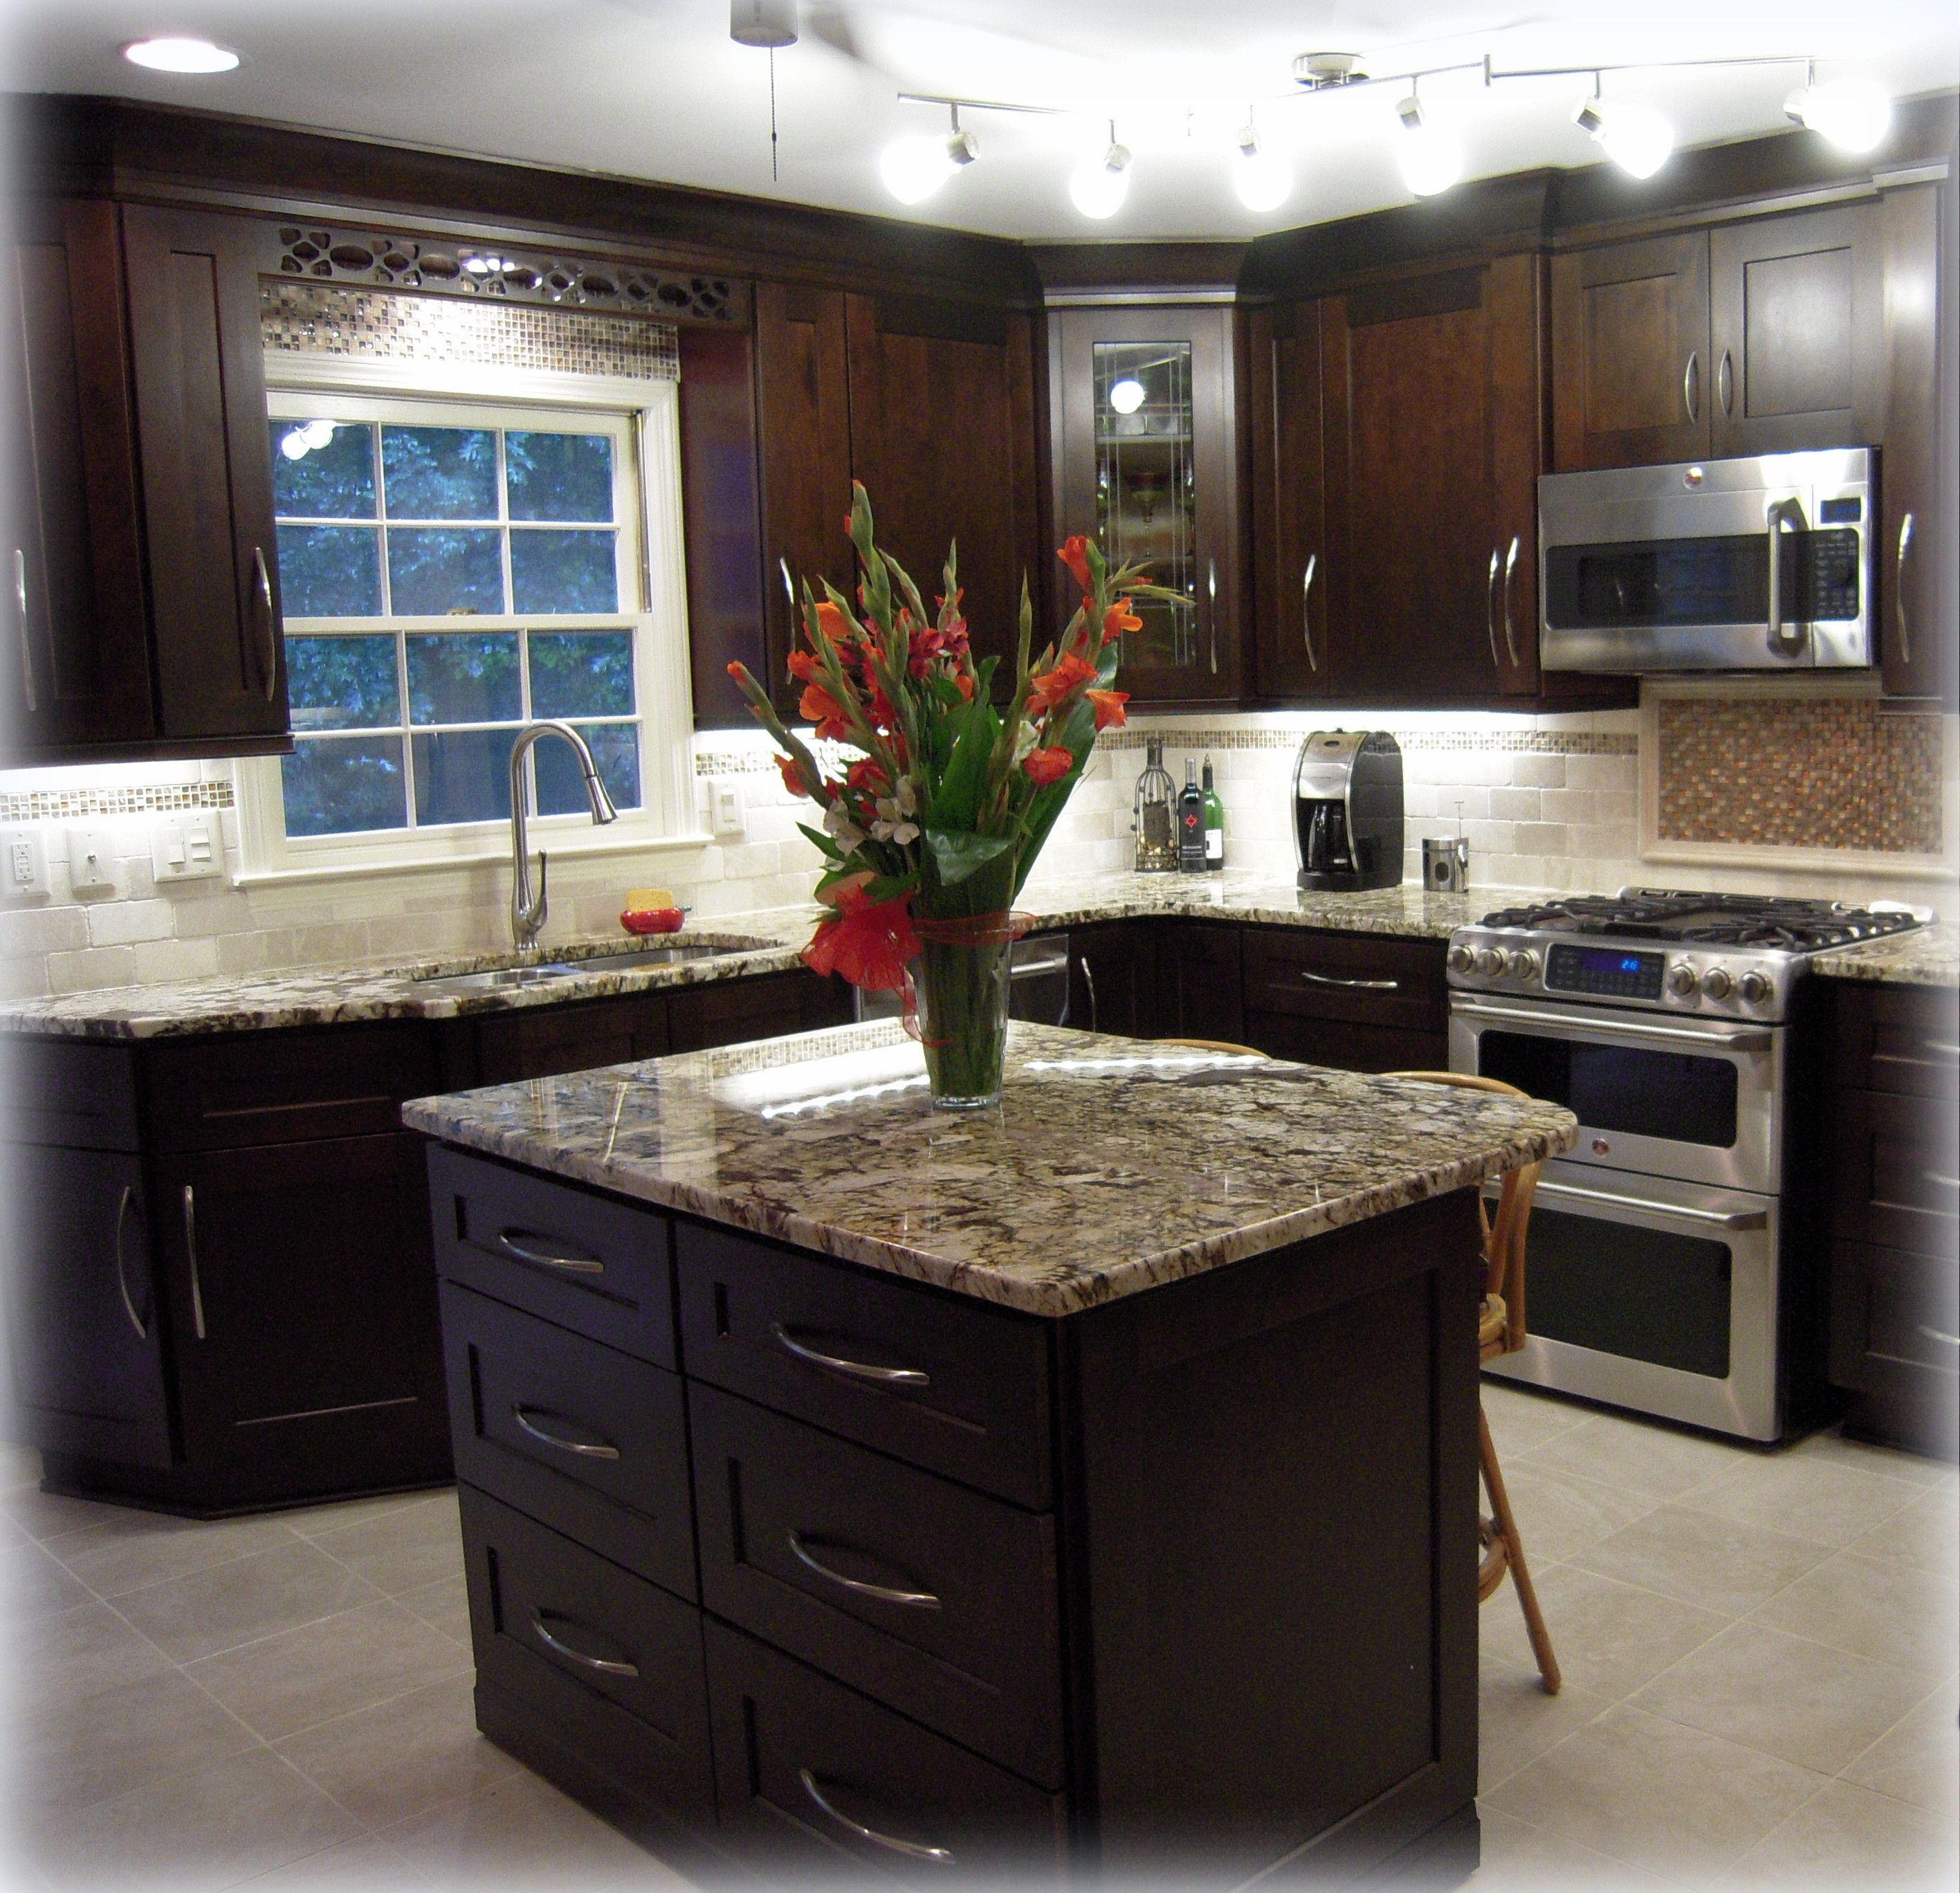 backsplash lighting kitchen cabinet lights Backsplash Tiles Completed Kitchen Mocha Maple Shaker Cabinets Exotic Granite Countertops Track Lighting And Under Cabinet Lighting